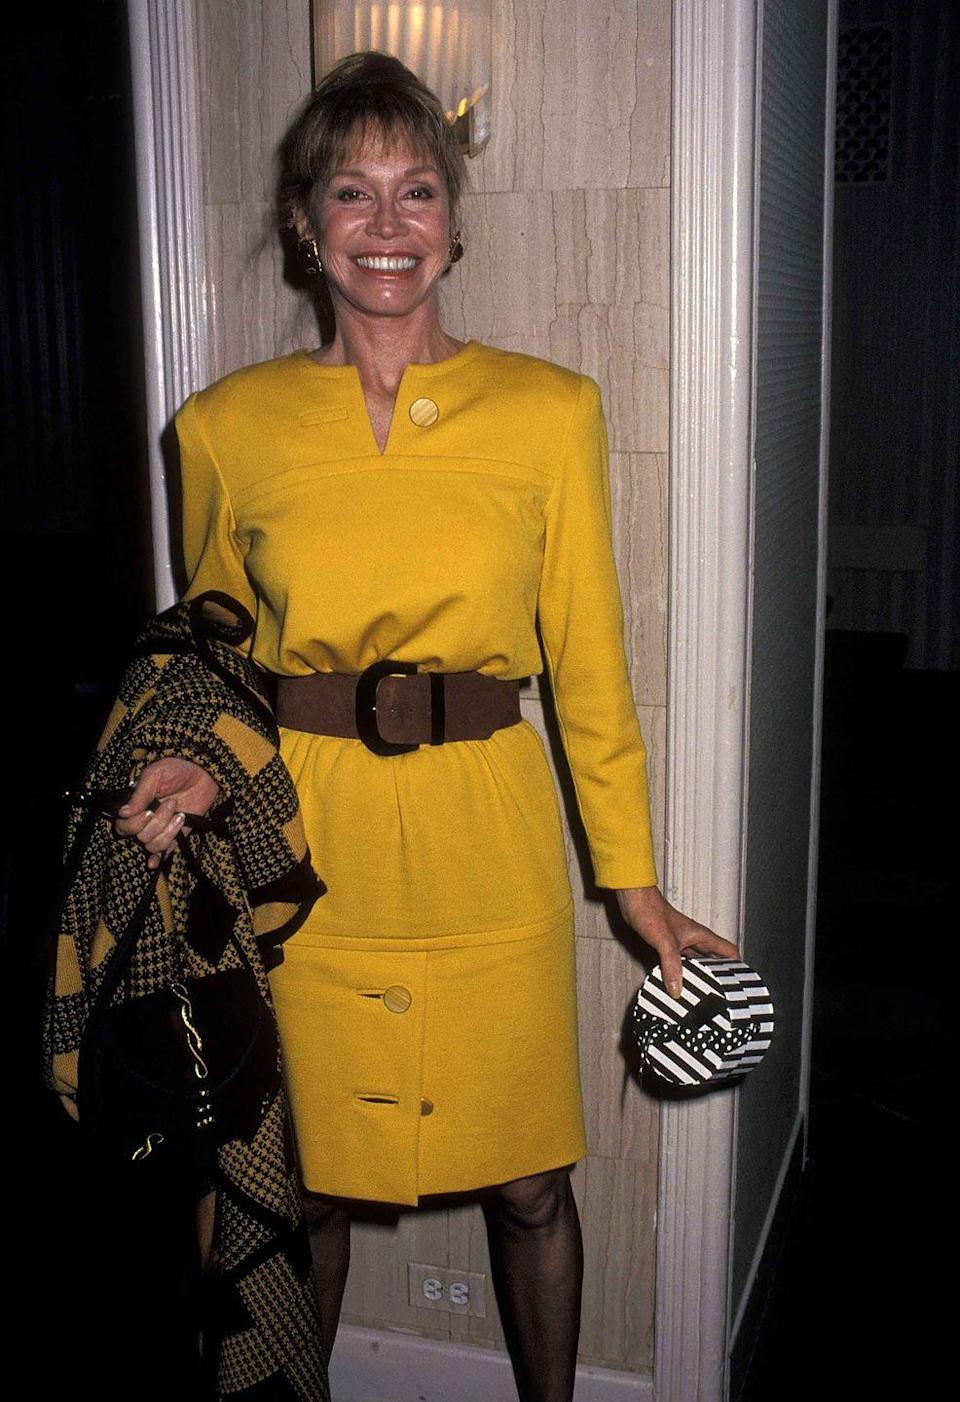 <p>Moore attends an awards ceremony at the Waldorf-Astoria Hotel in New York City.</p>